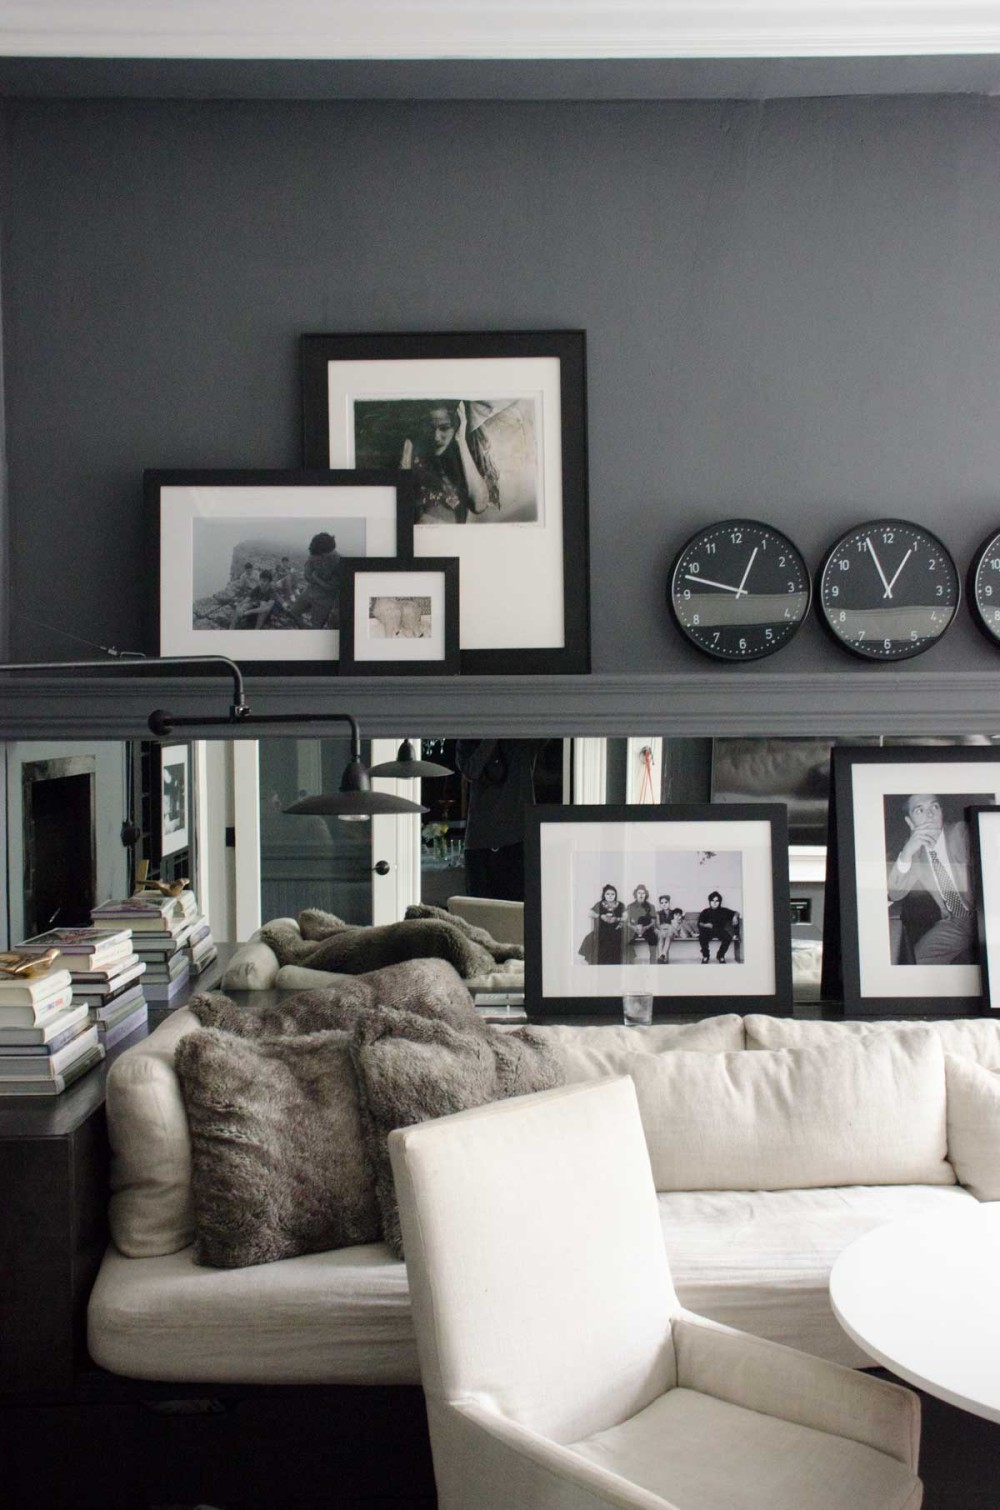 12 Nicely Neutral Rooms without White Walls – Design*Sponge